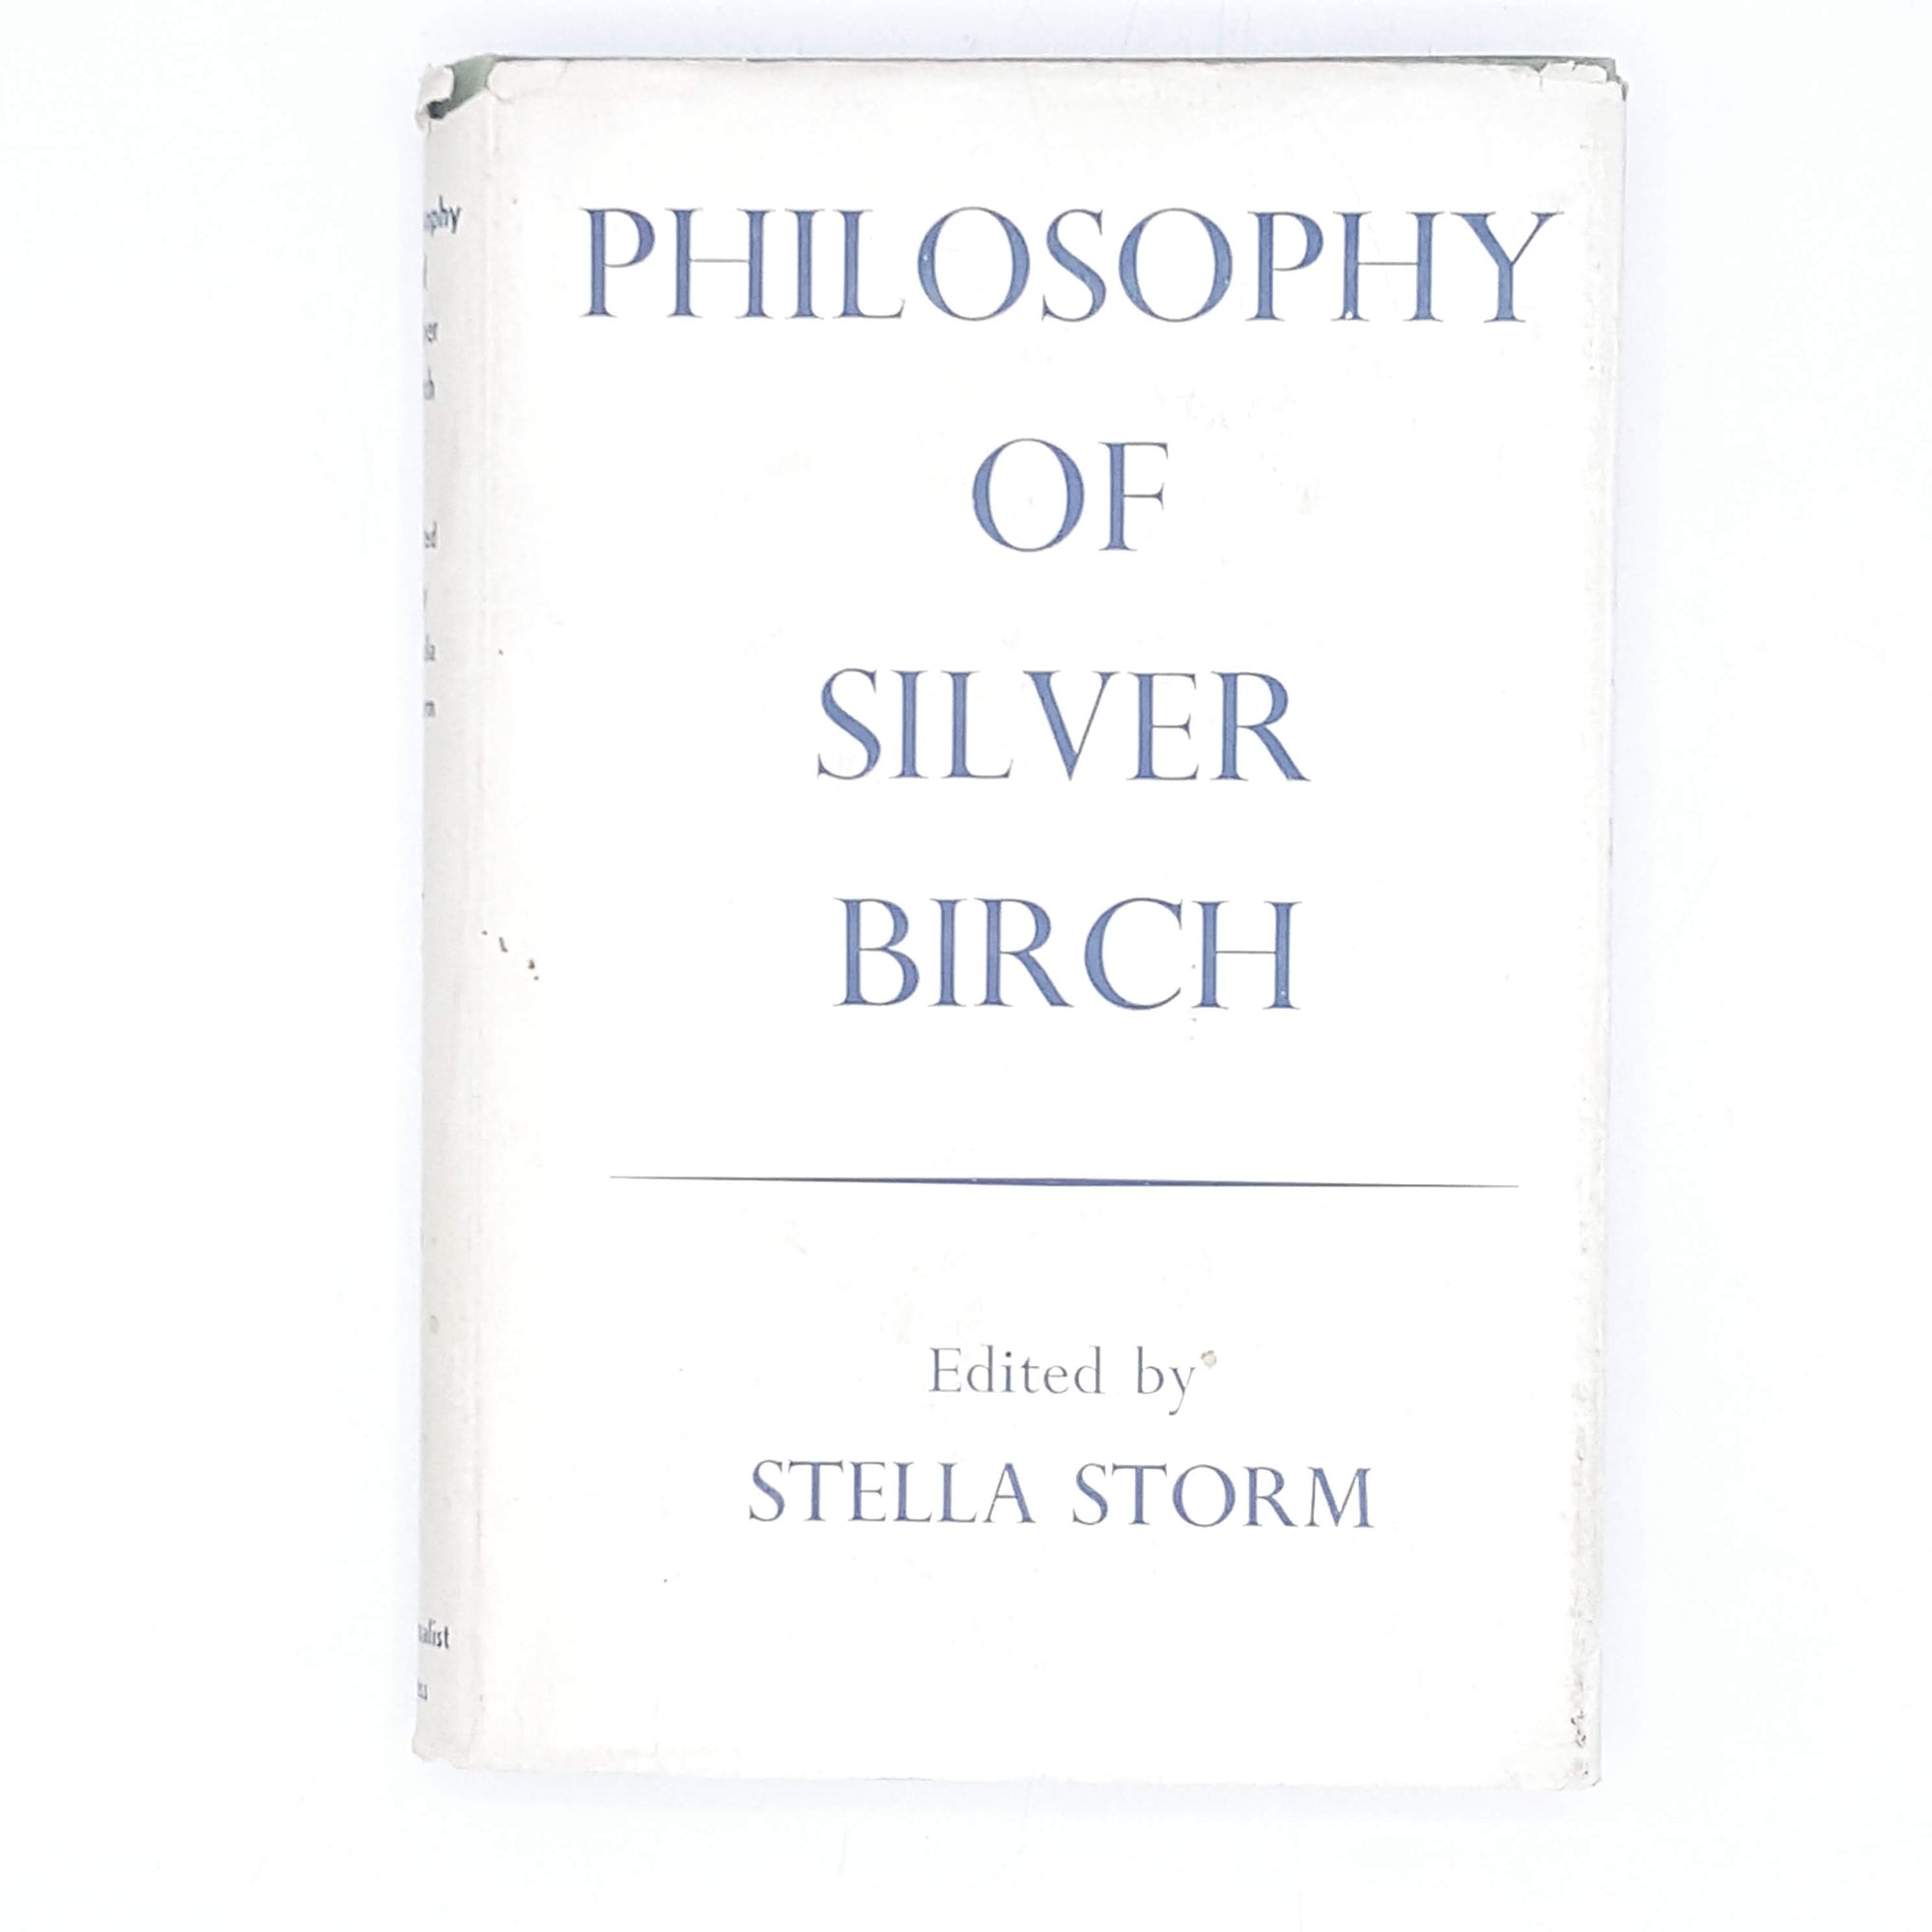 Philosophy of Silver Birch 1969